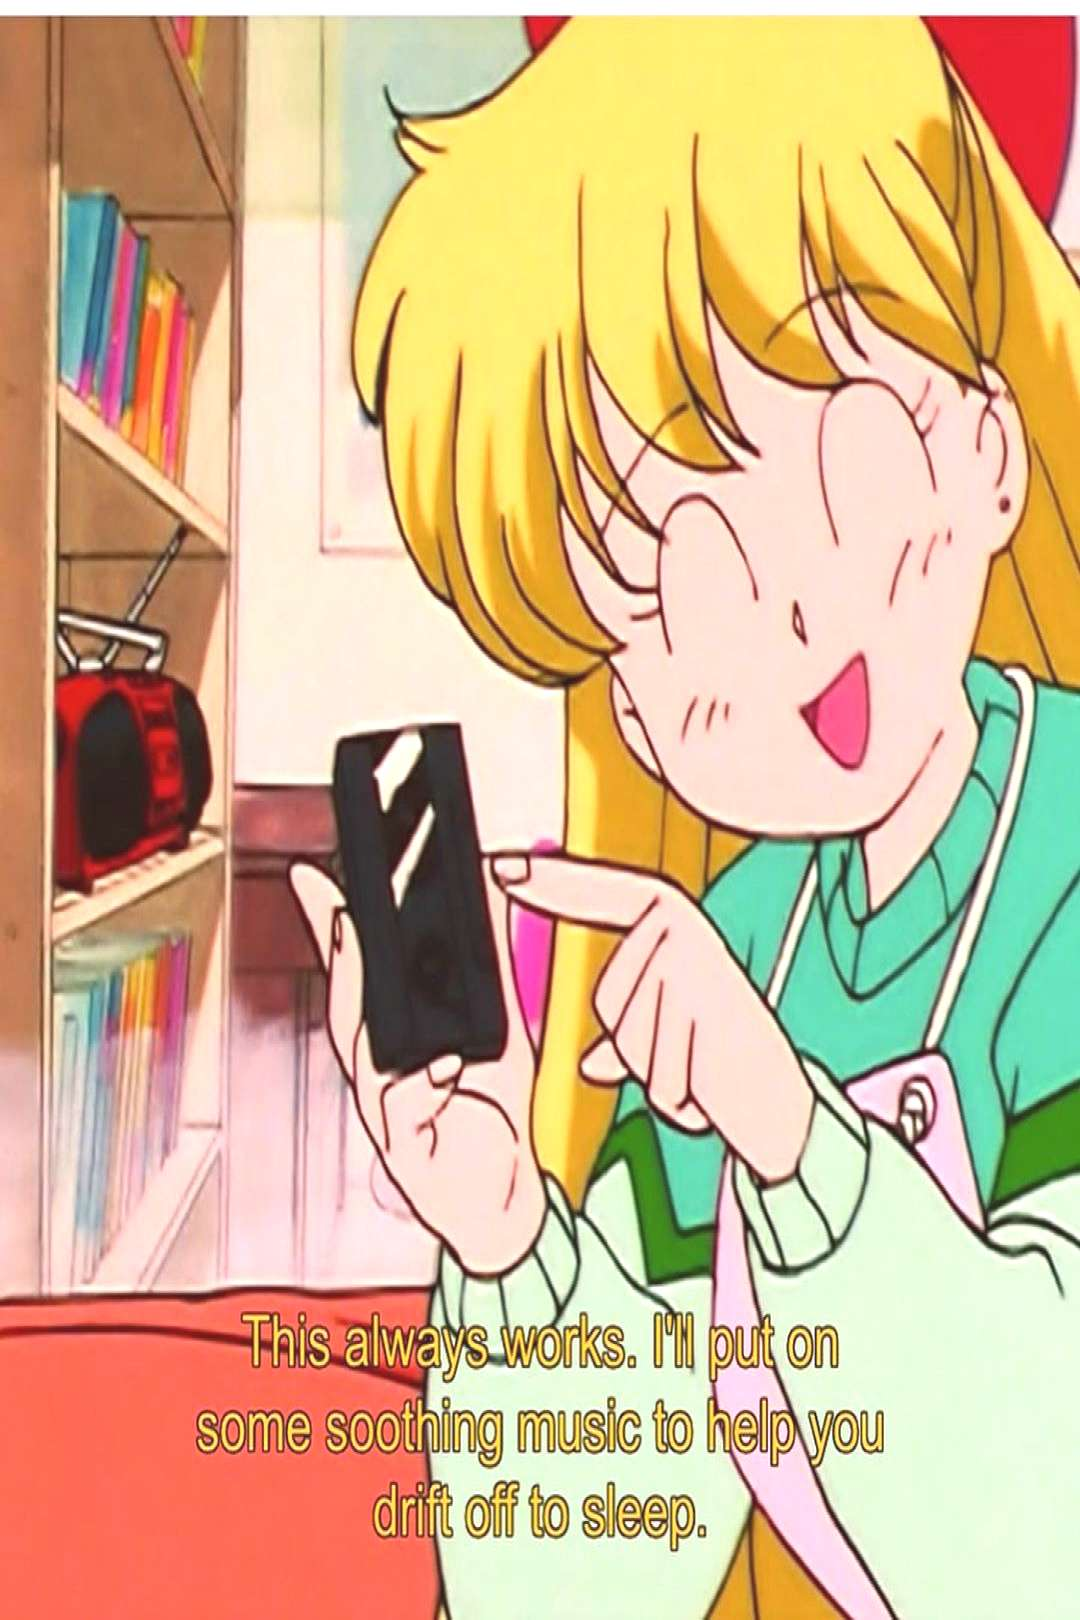 I love this episode * * * * * * * * * * * yay #sailormoon #art #u